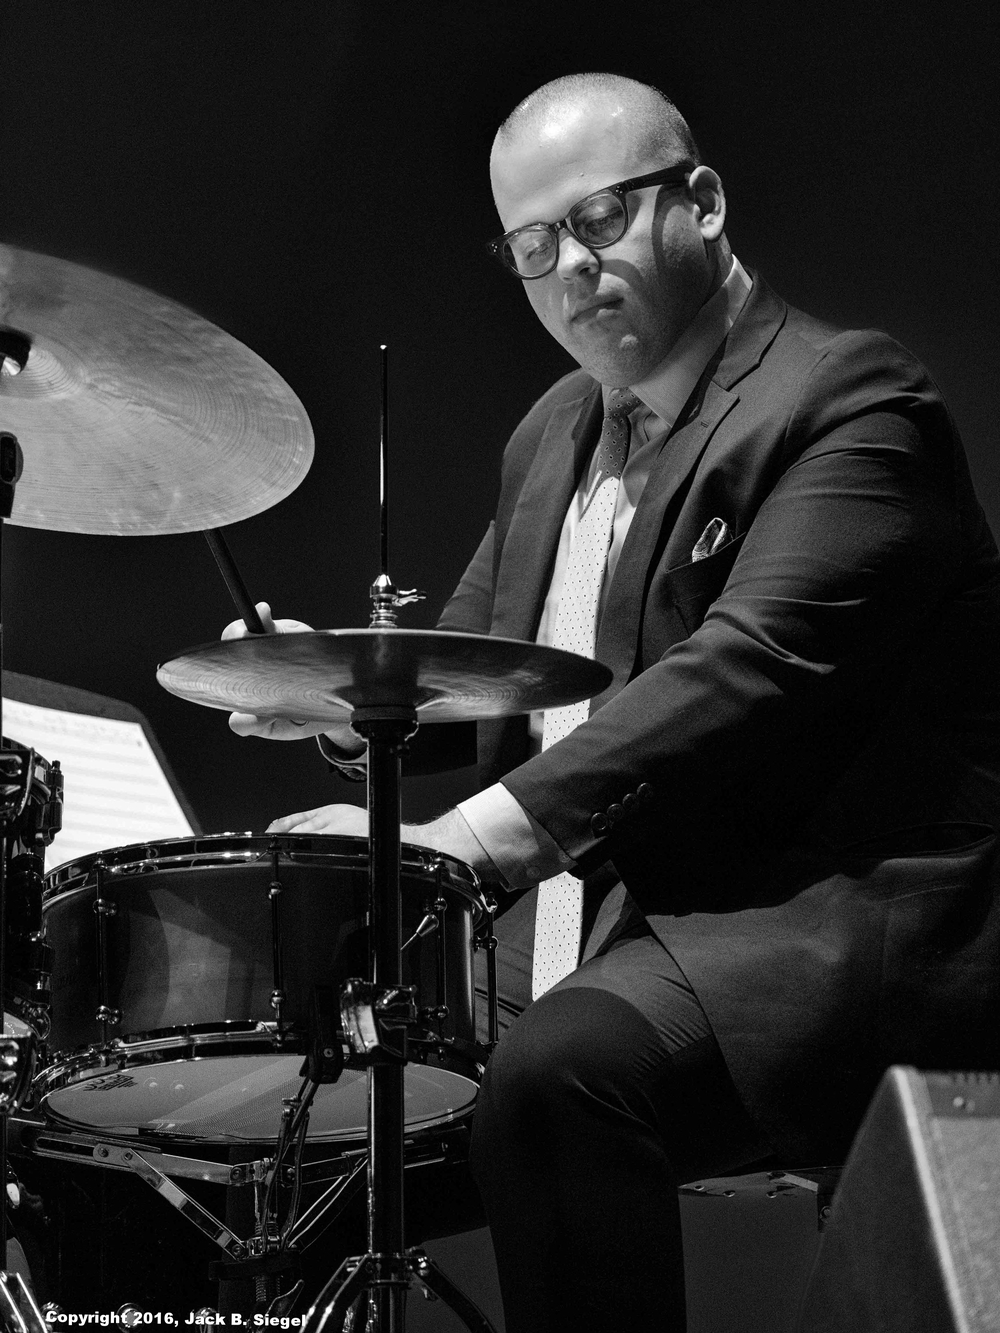 Aaron Kimmel on Drums